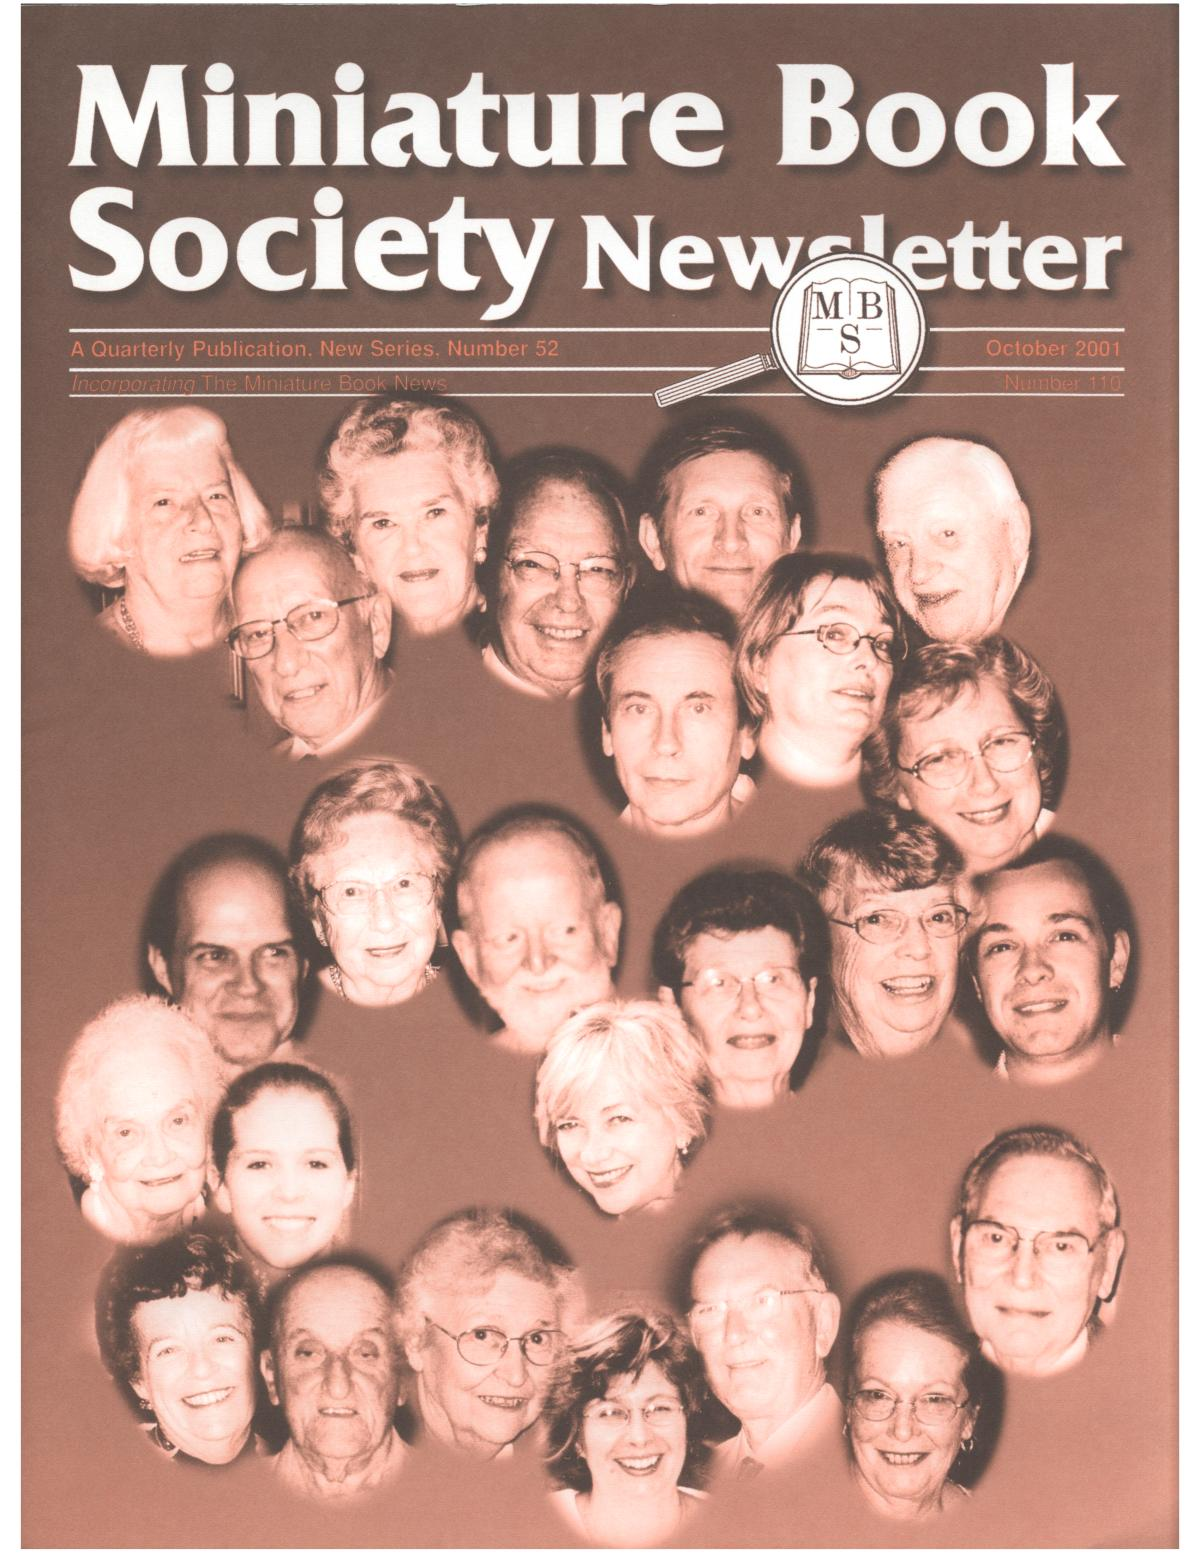 Miniature Book Society Newsletter 2001 October                                                                                                      Front Cover